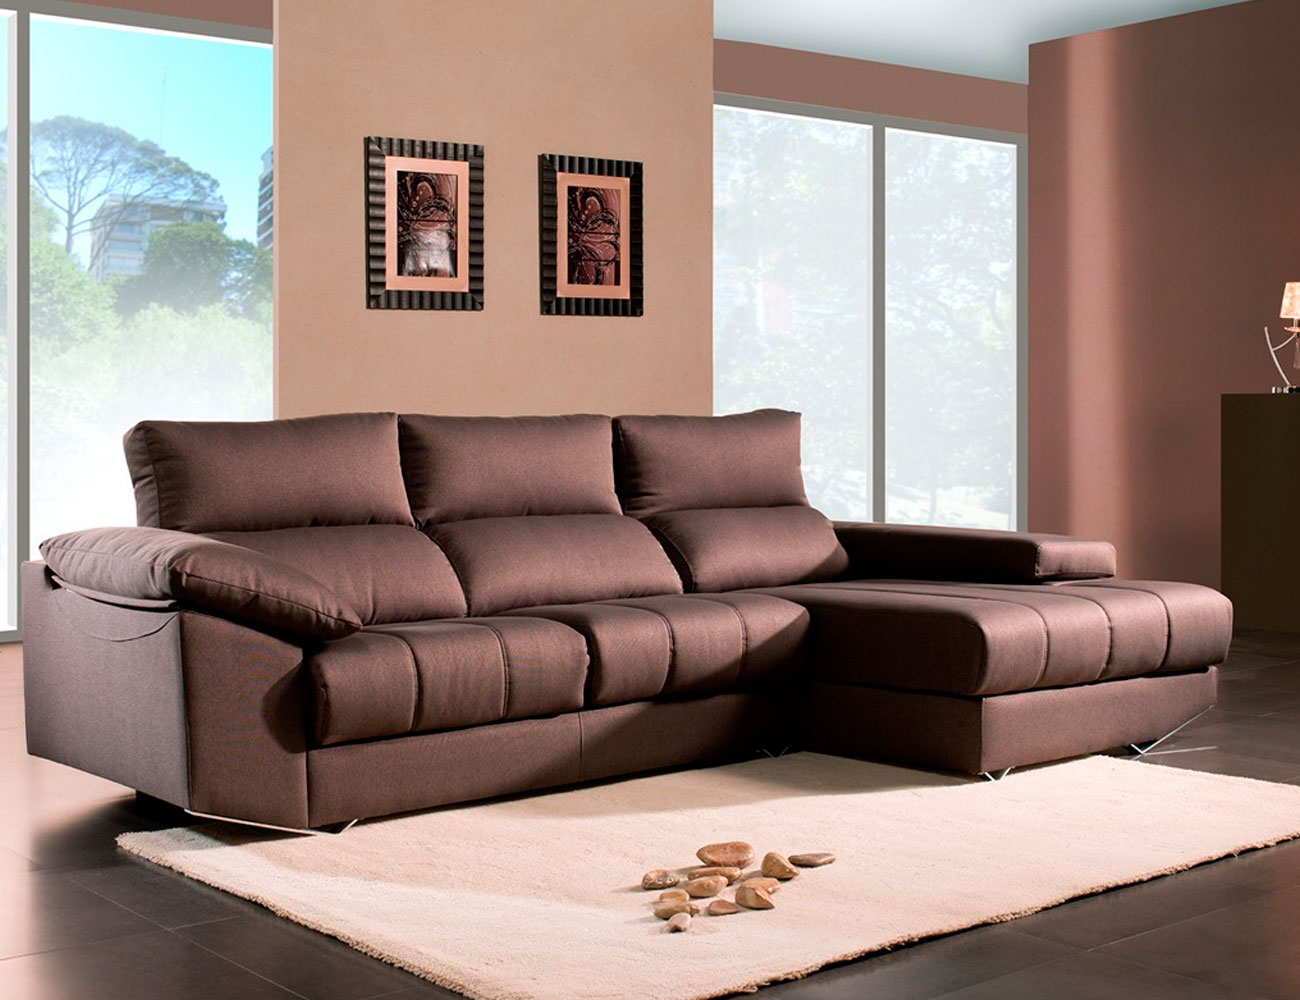 Sofa chaiselongue moderno brazo mecanico24